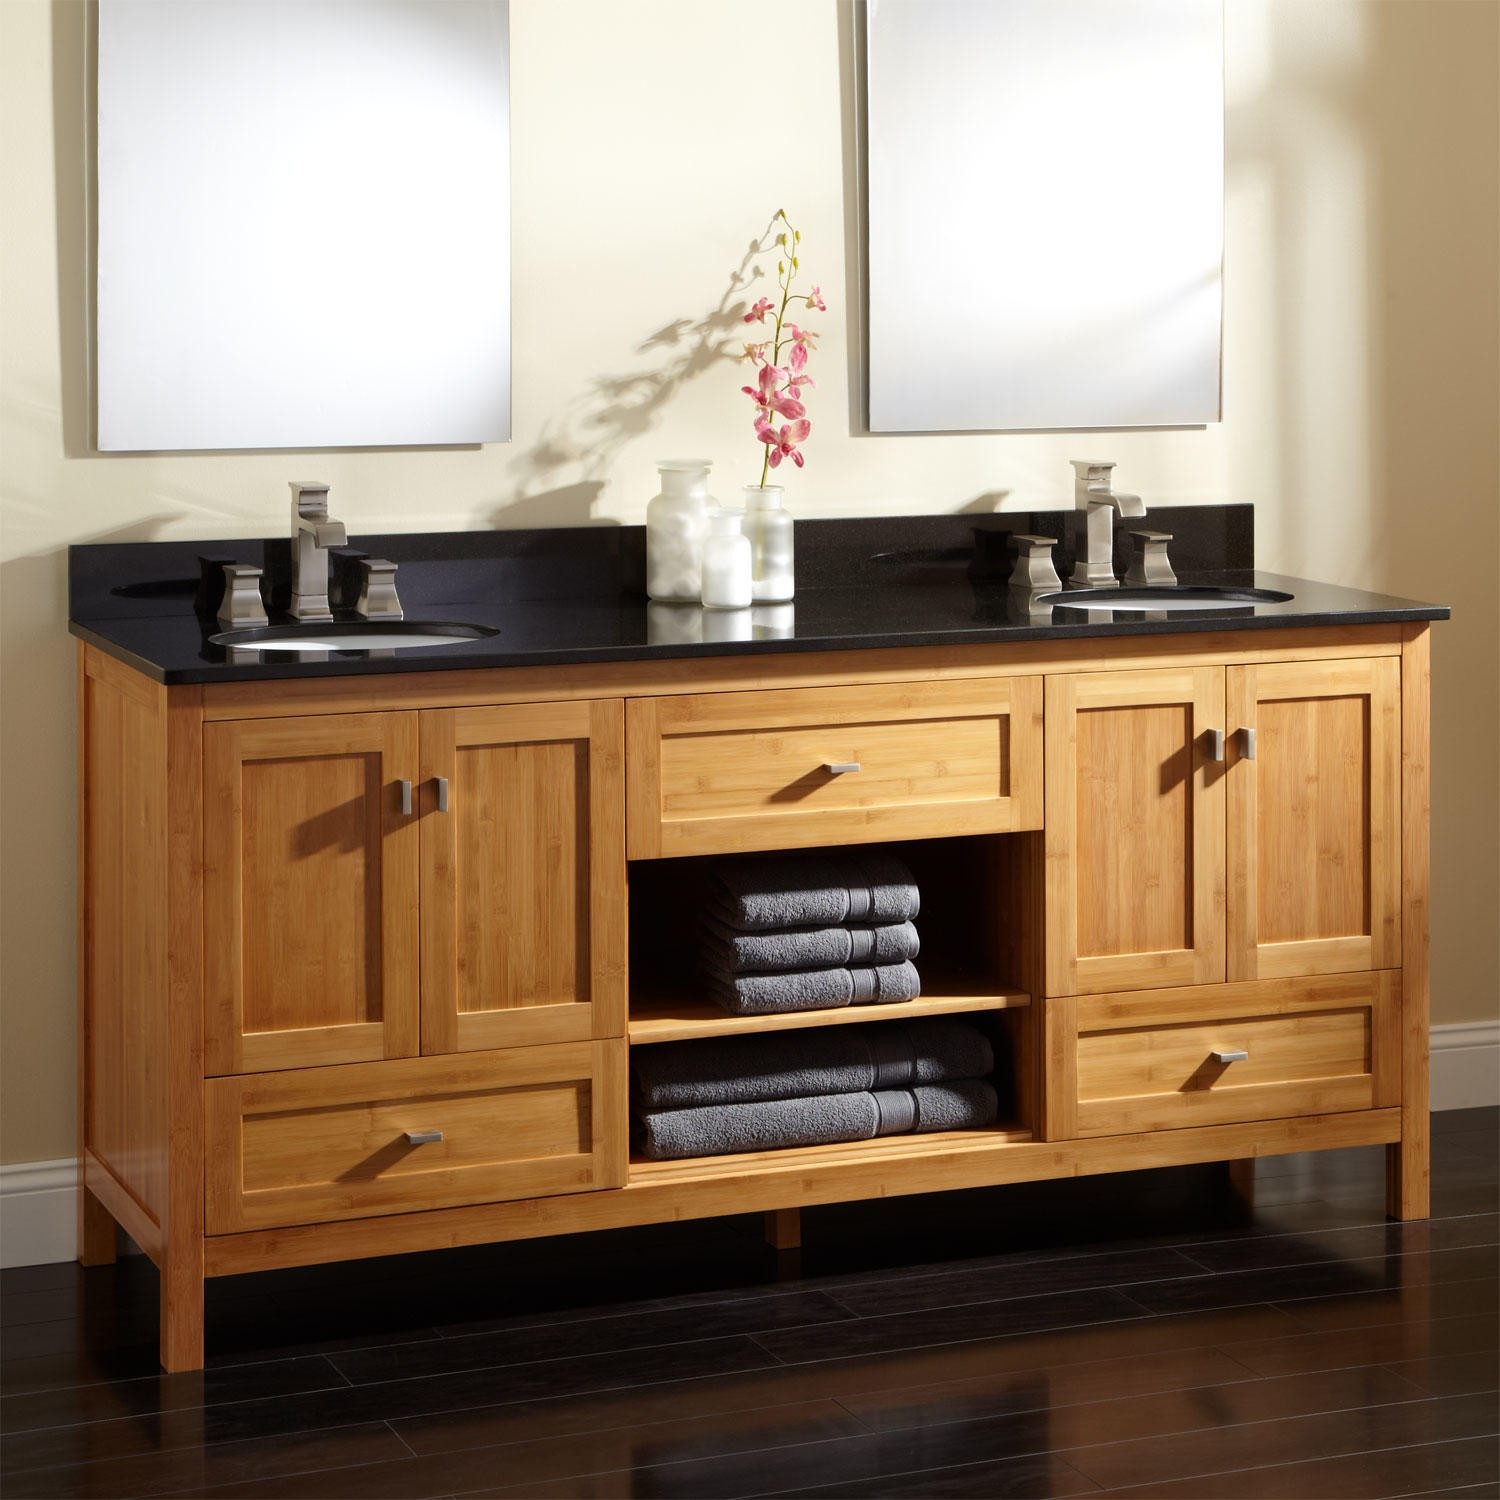 Breathtaking Double Vanity Cabinet Beautiful Bathroom Cabinets Top pertaining to sizing 1500 X 1500